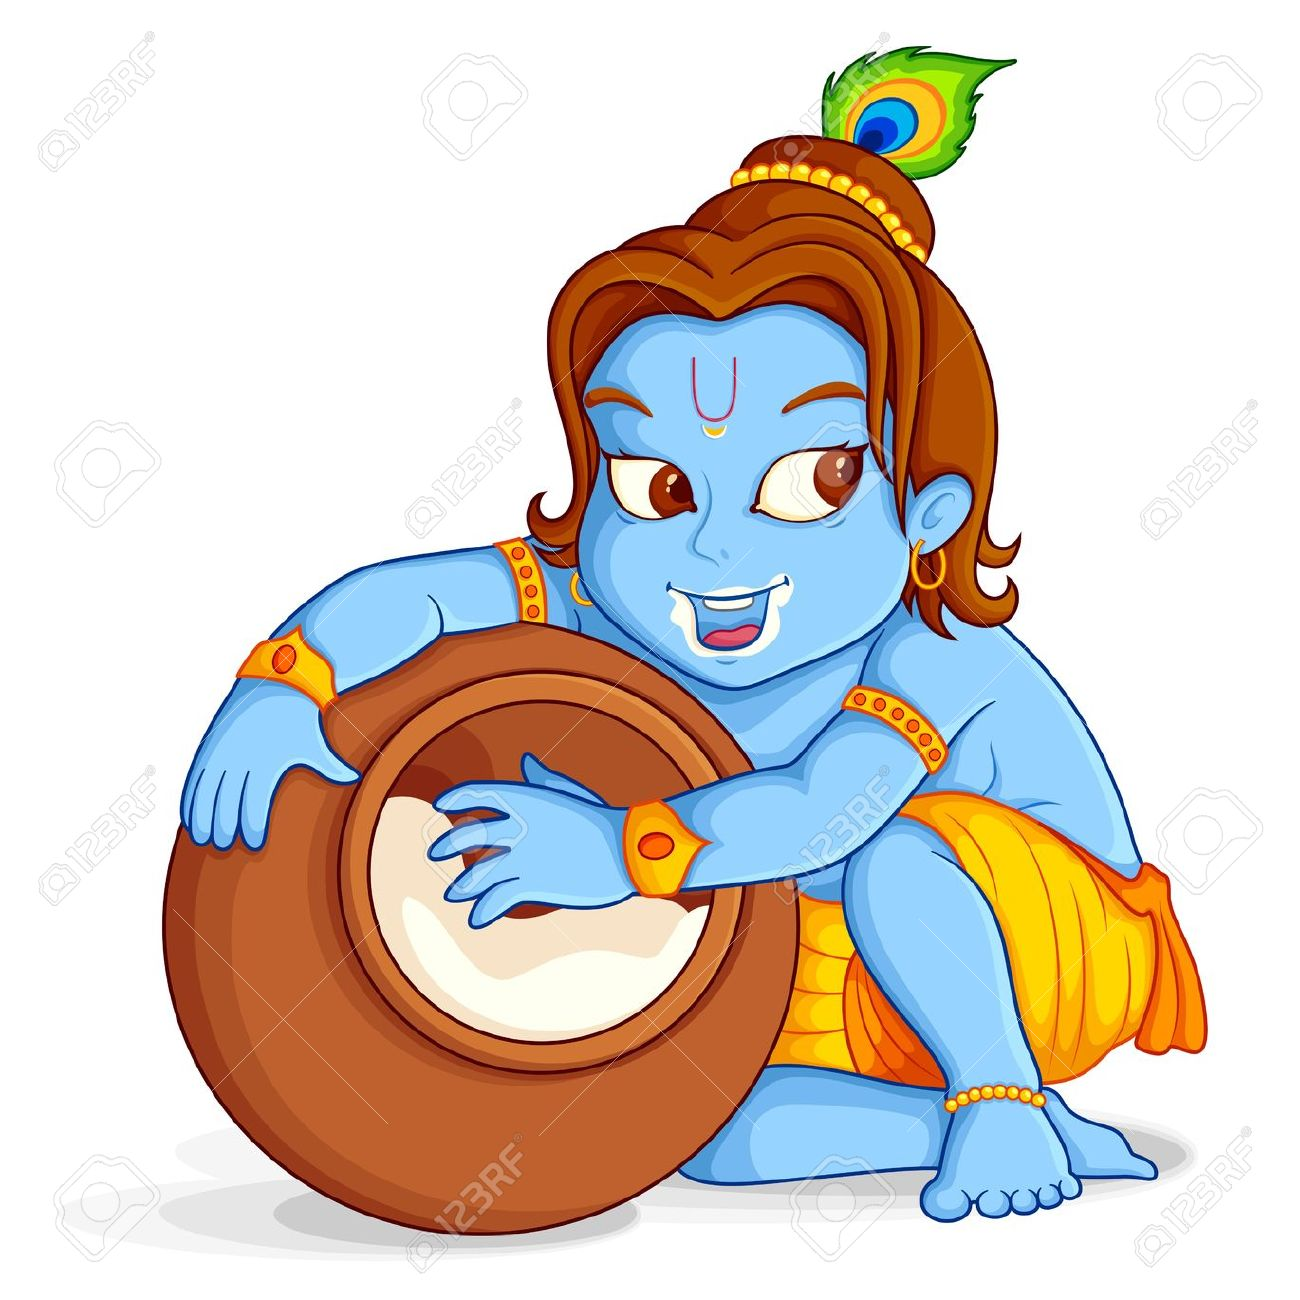 Baby krishna images clipart.